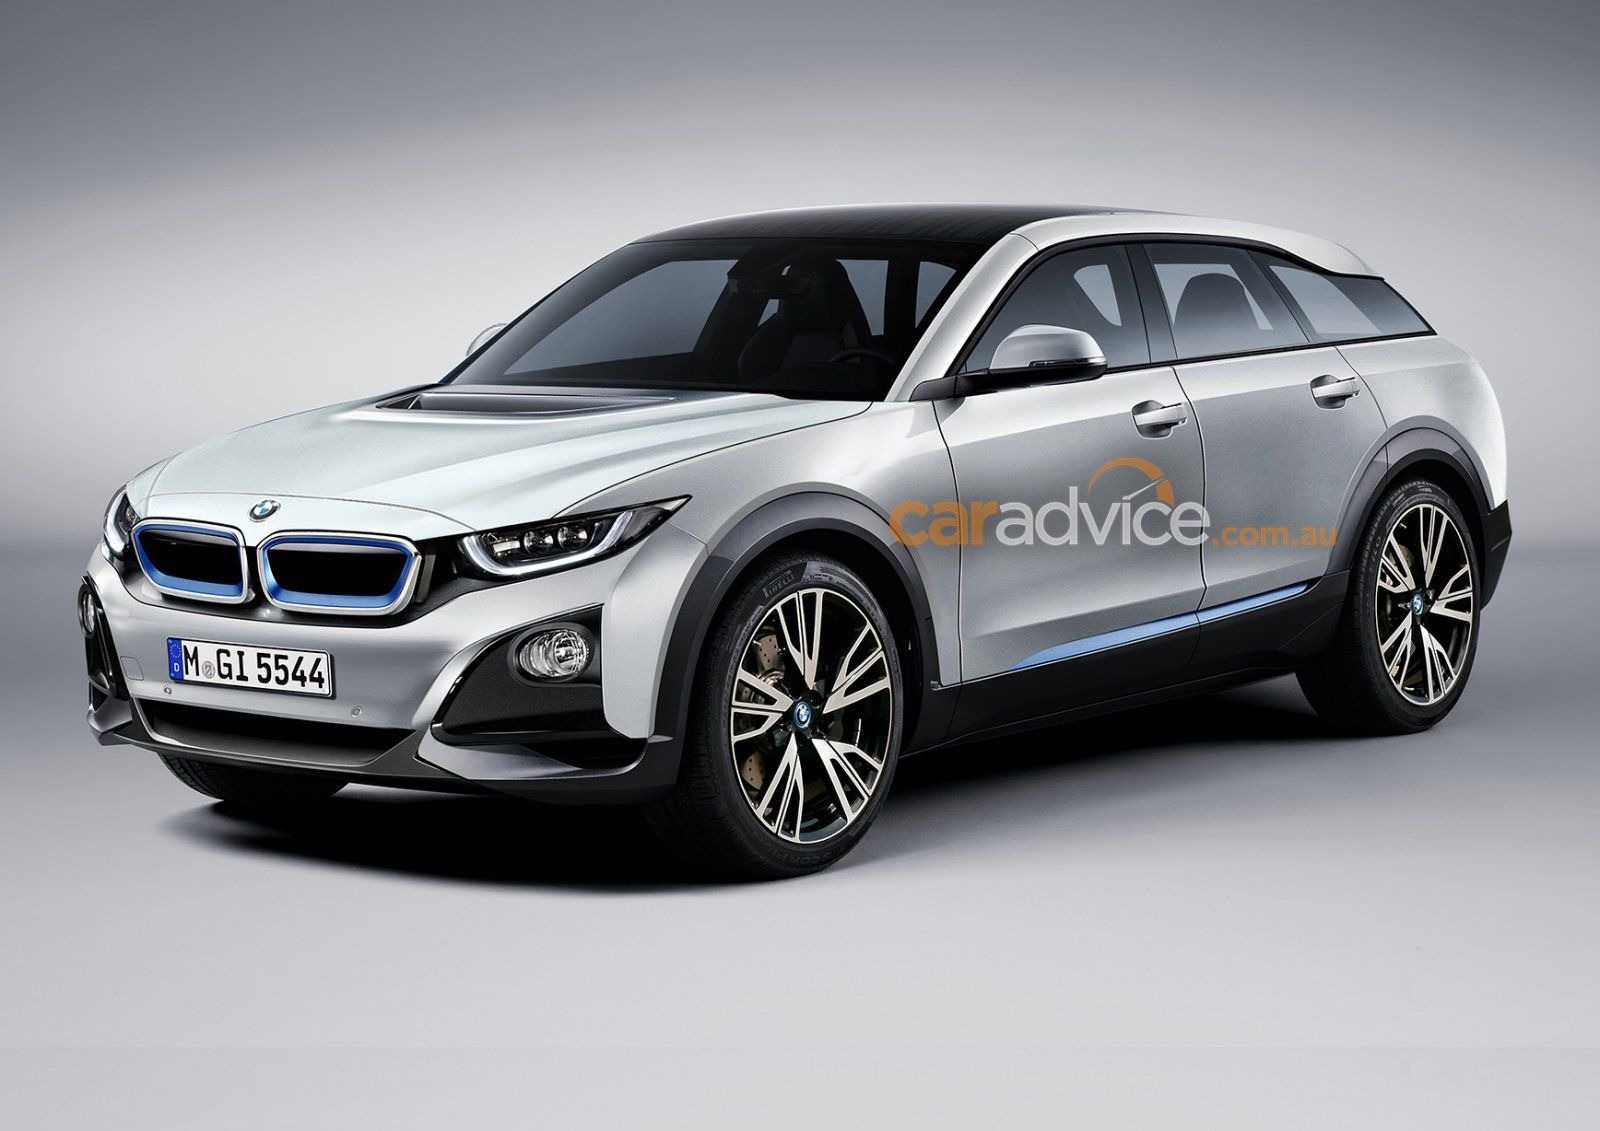 BMW i6 Crossover likely to arrive in 2020 - http://www.bmwblog.com/2016/01/20/bmw-i6-crossover-likely-to-arrive-in-2020/